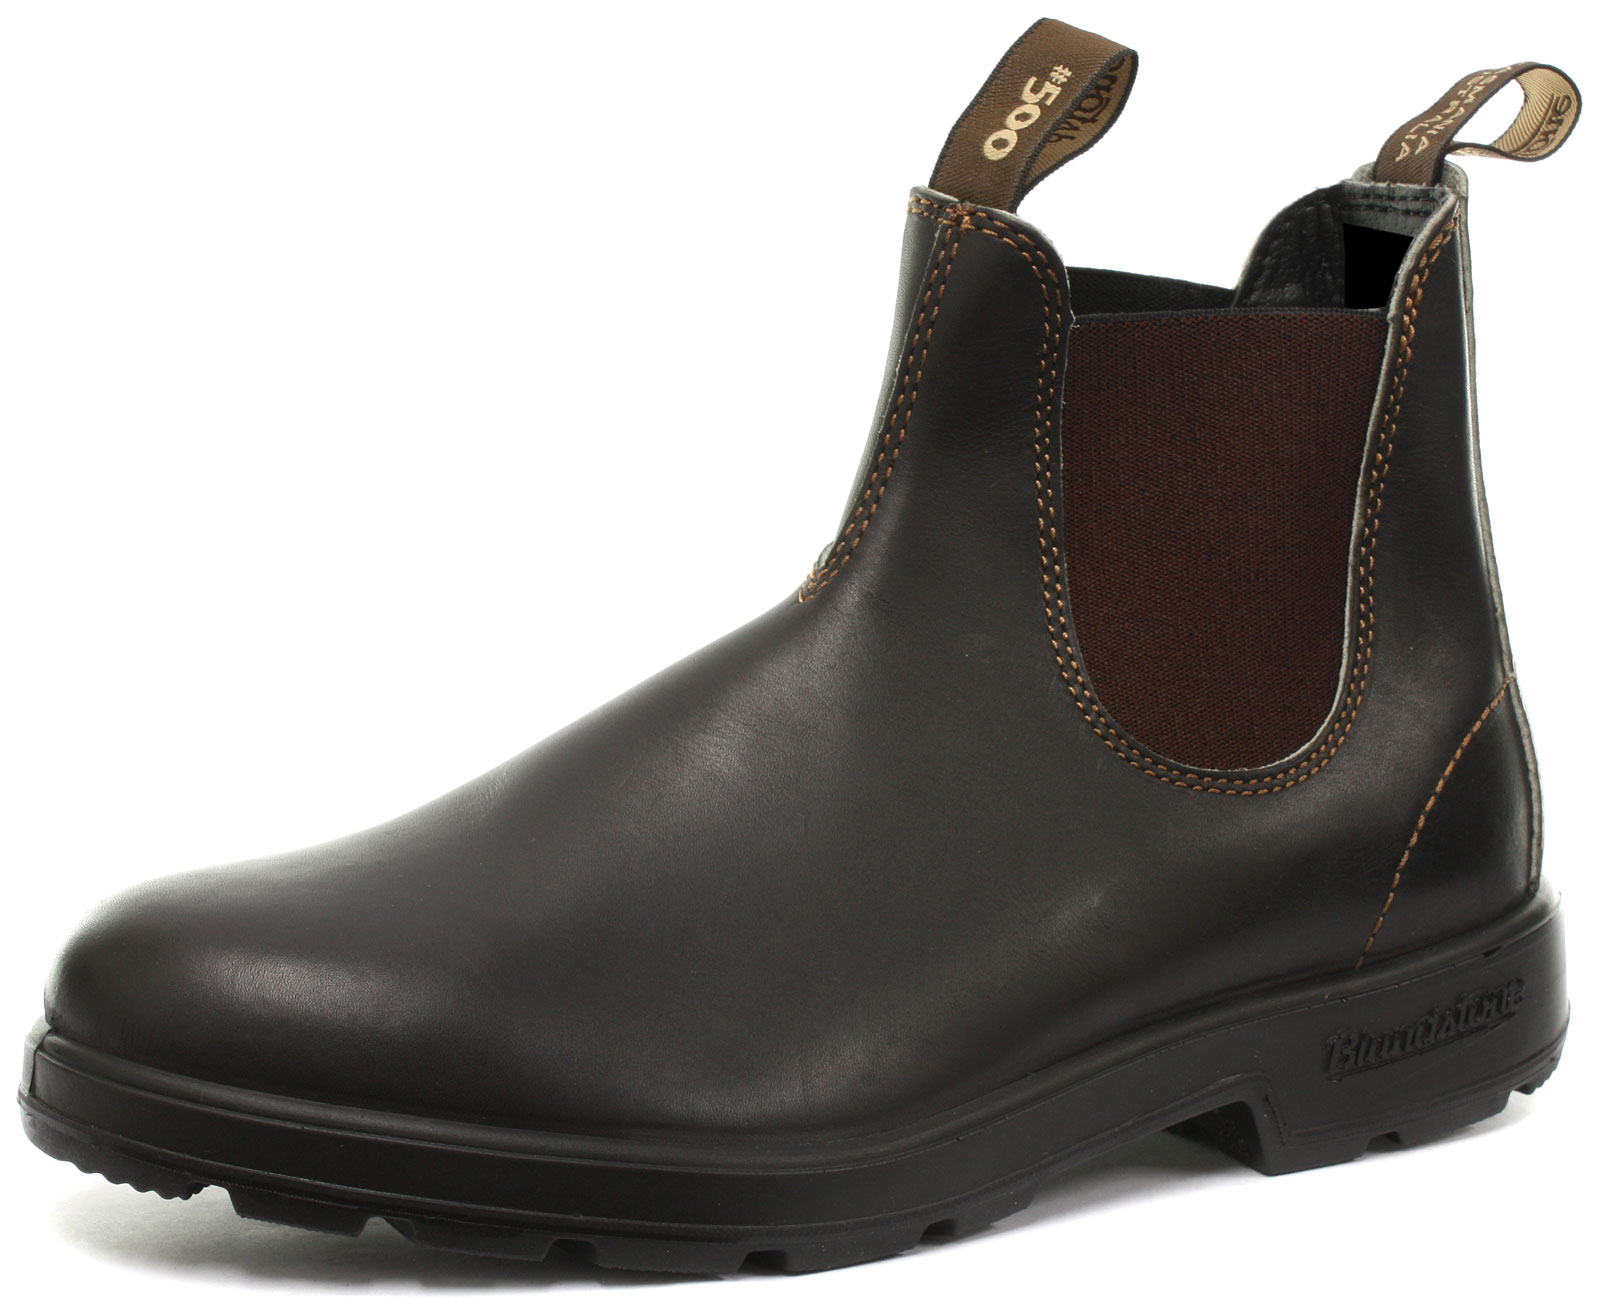 New New New Blundstone 500/510 Classic Unisex Chelsea botas ALL Talla AND COLOURS a9688e